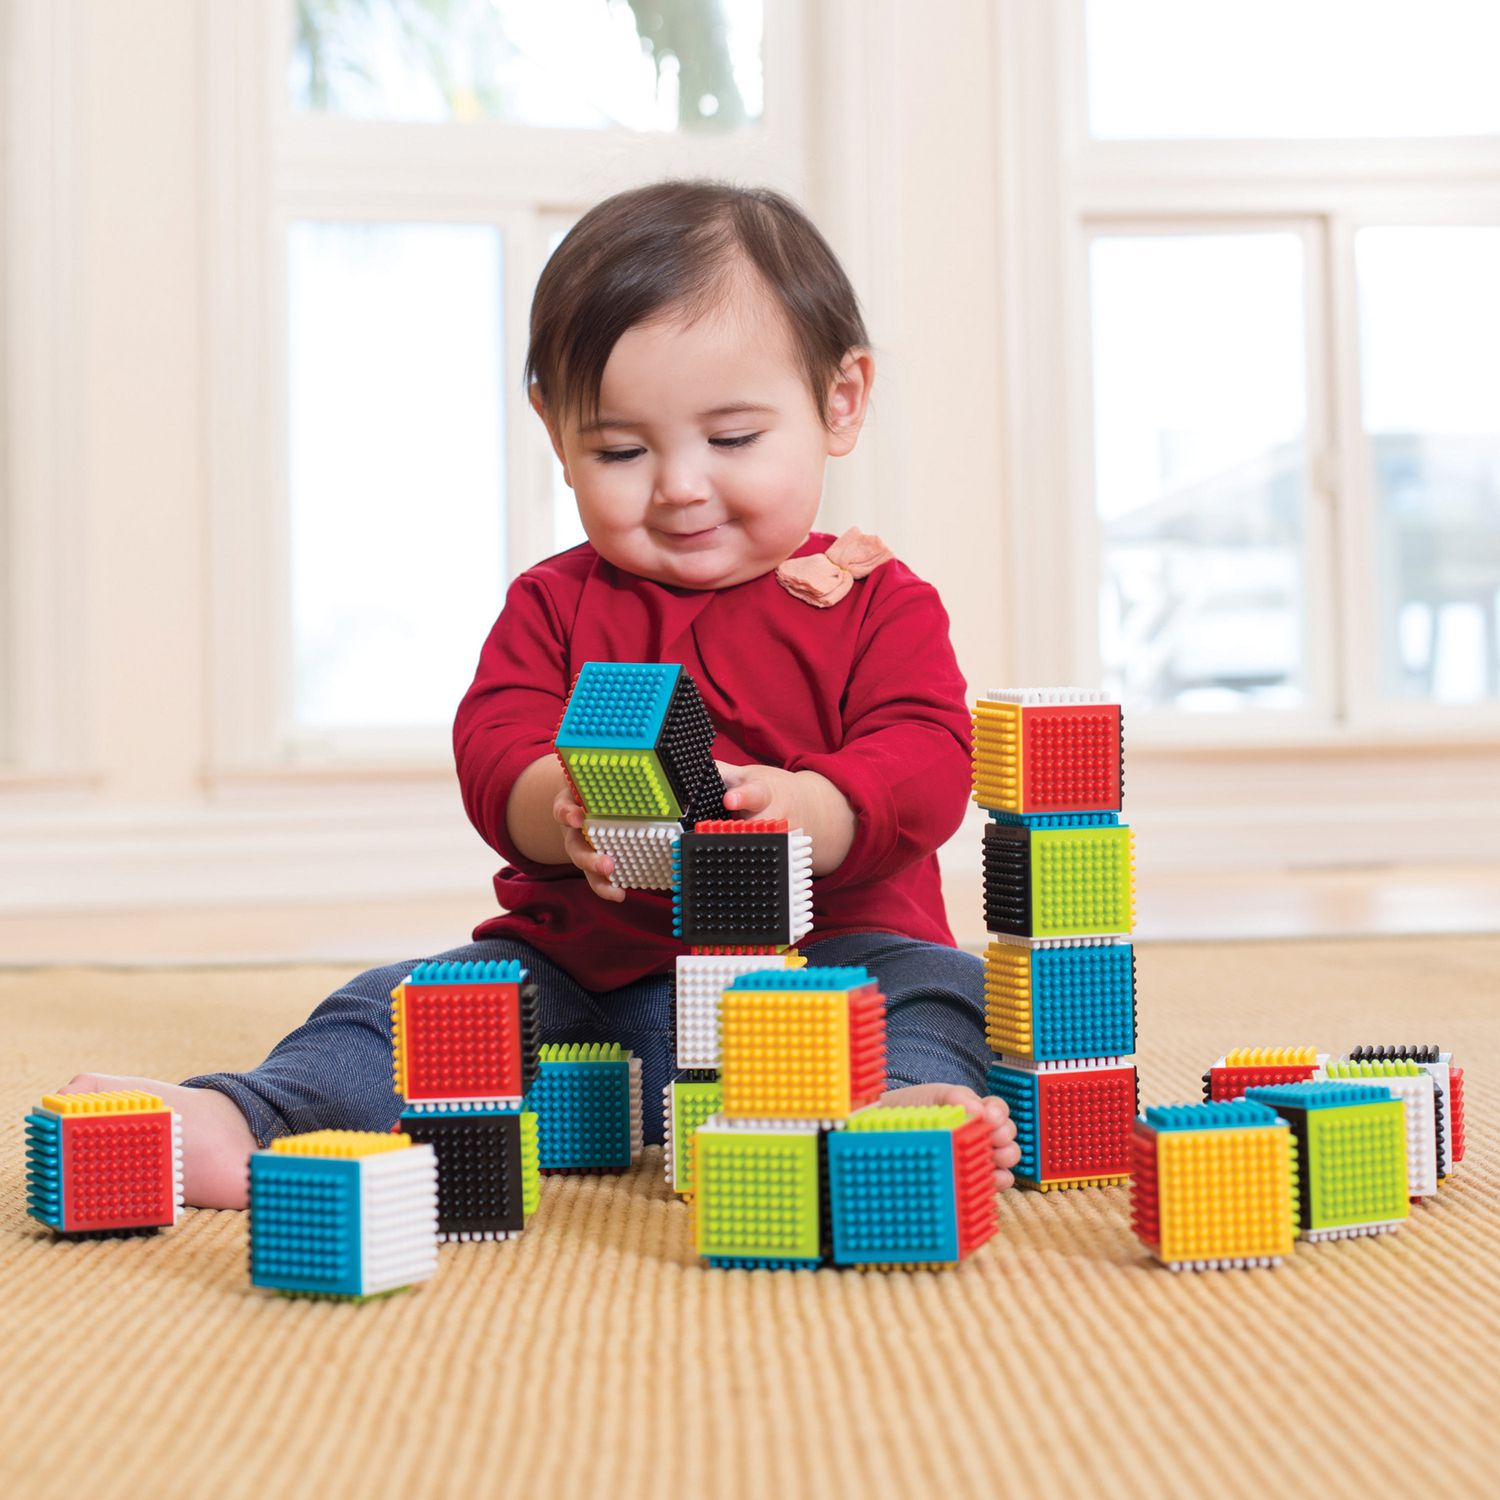 Infantino Press & Stay Sensory Blocks